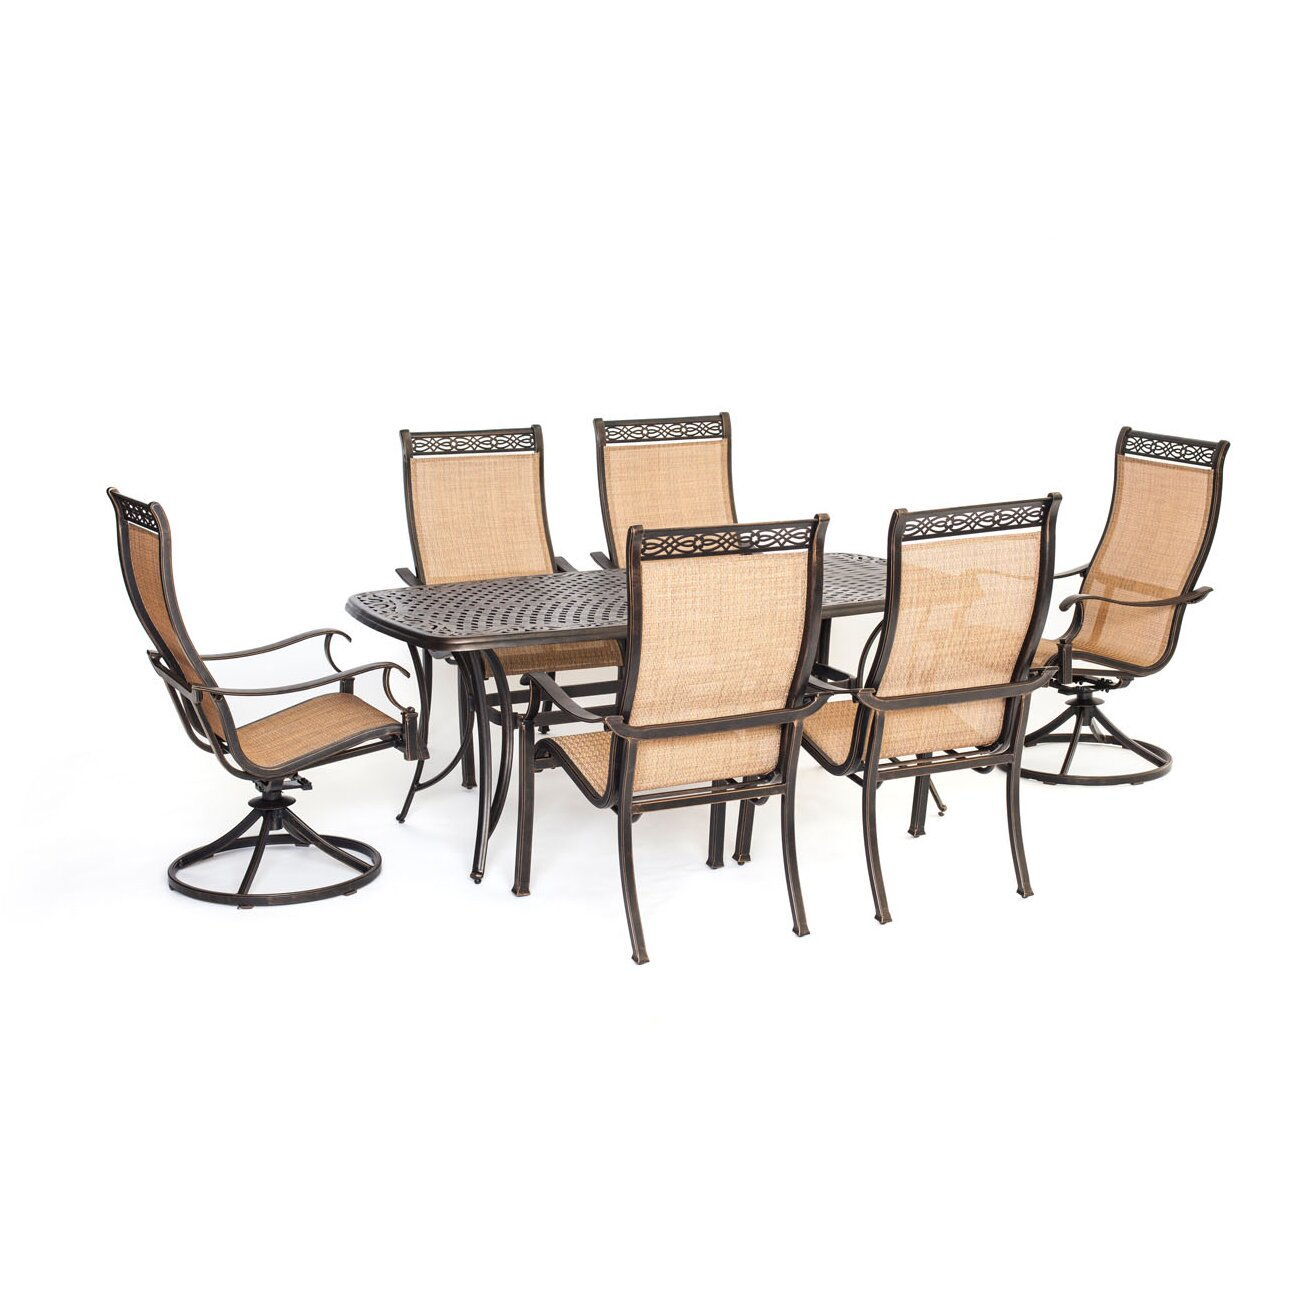 Hanover manor 7 piece dining set wayfair for 7 piece dining set